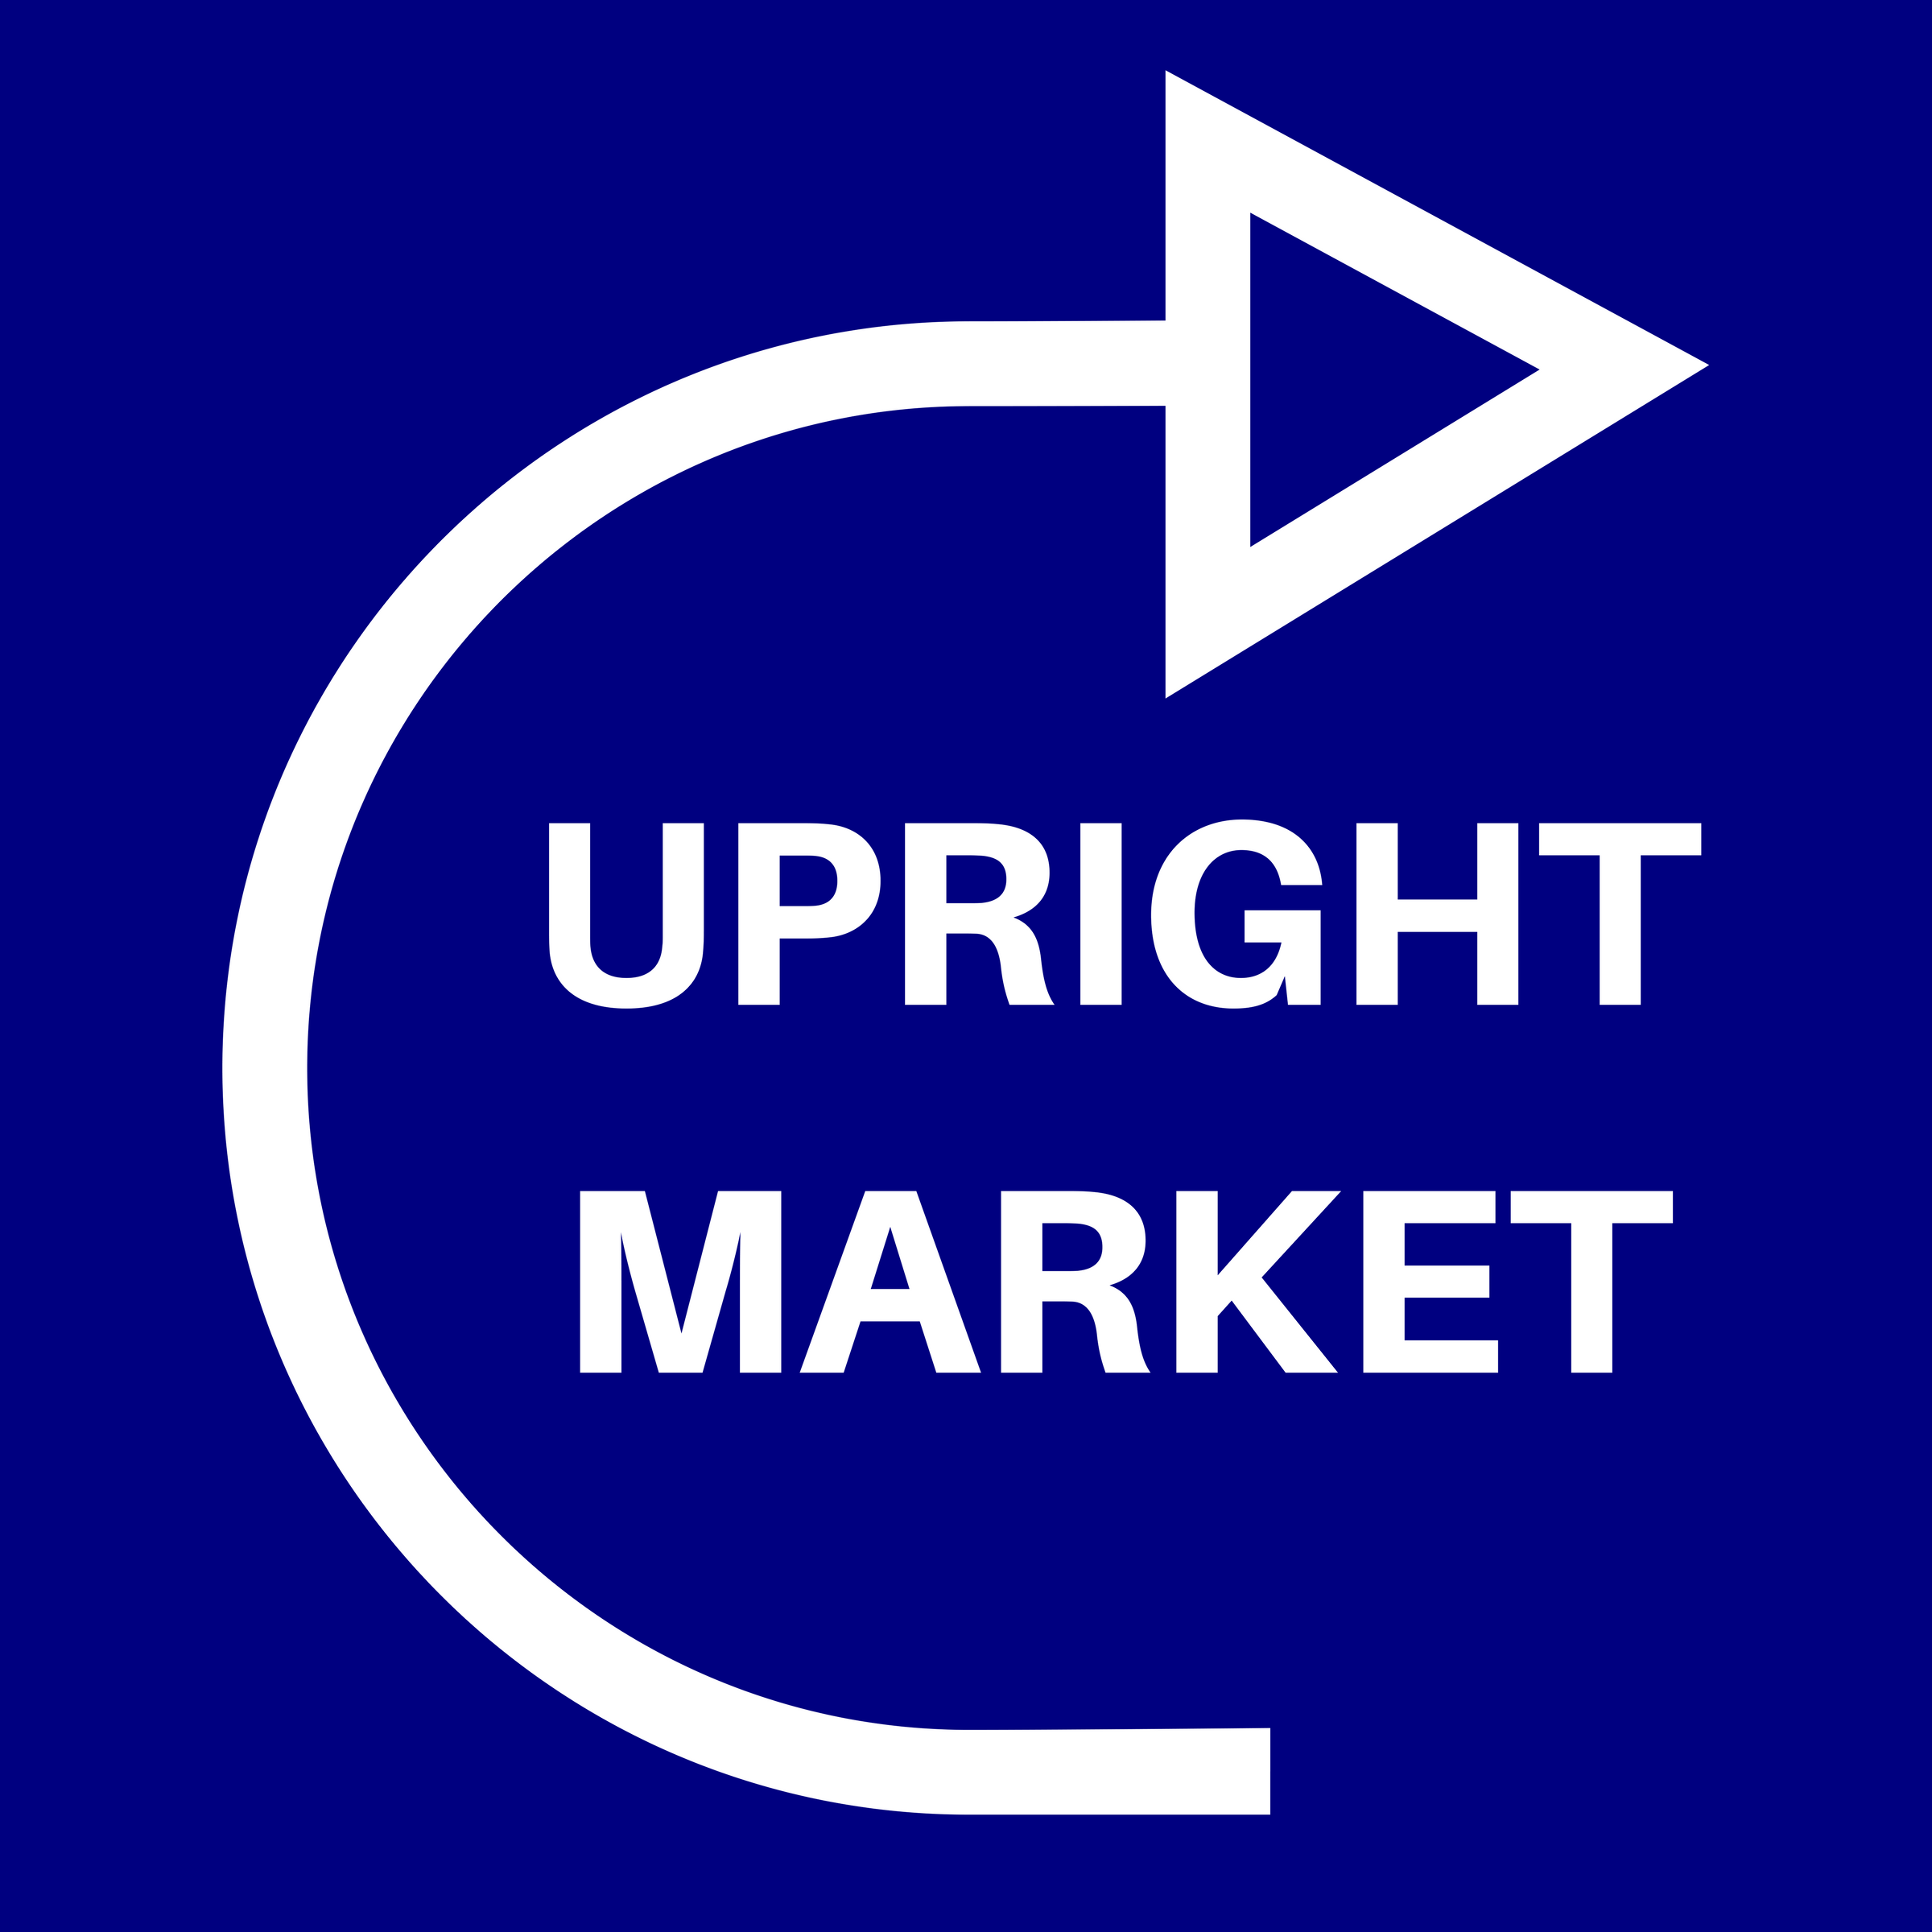 Upright Market